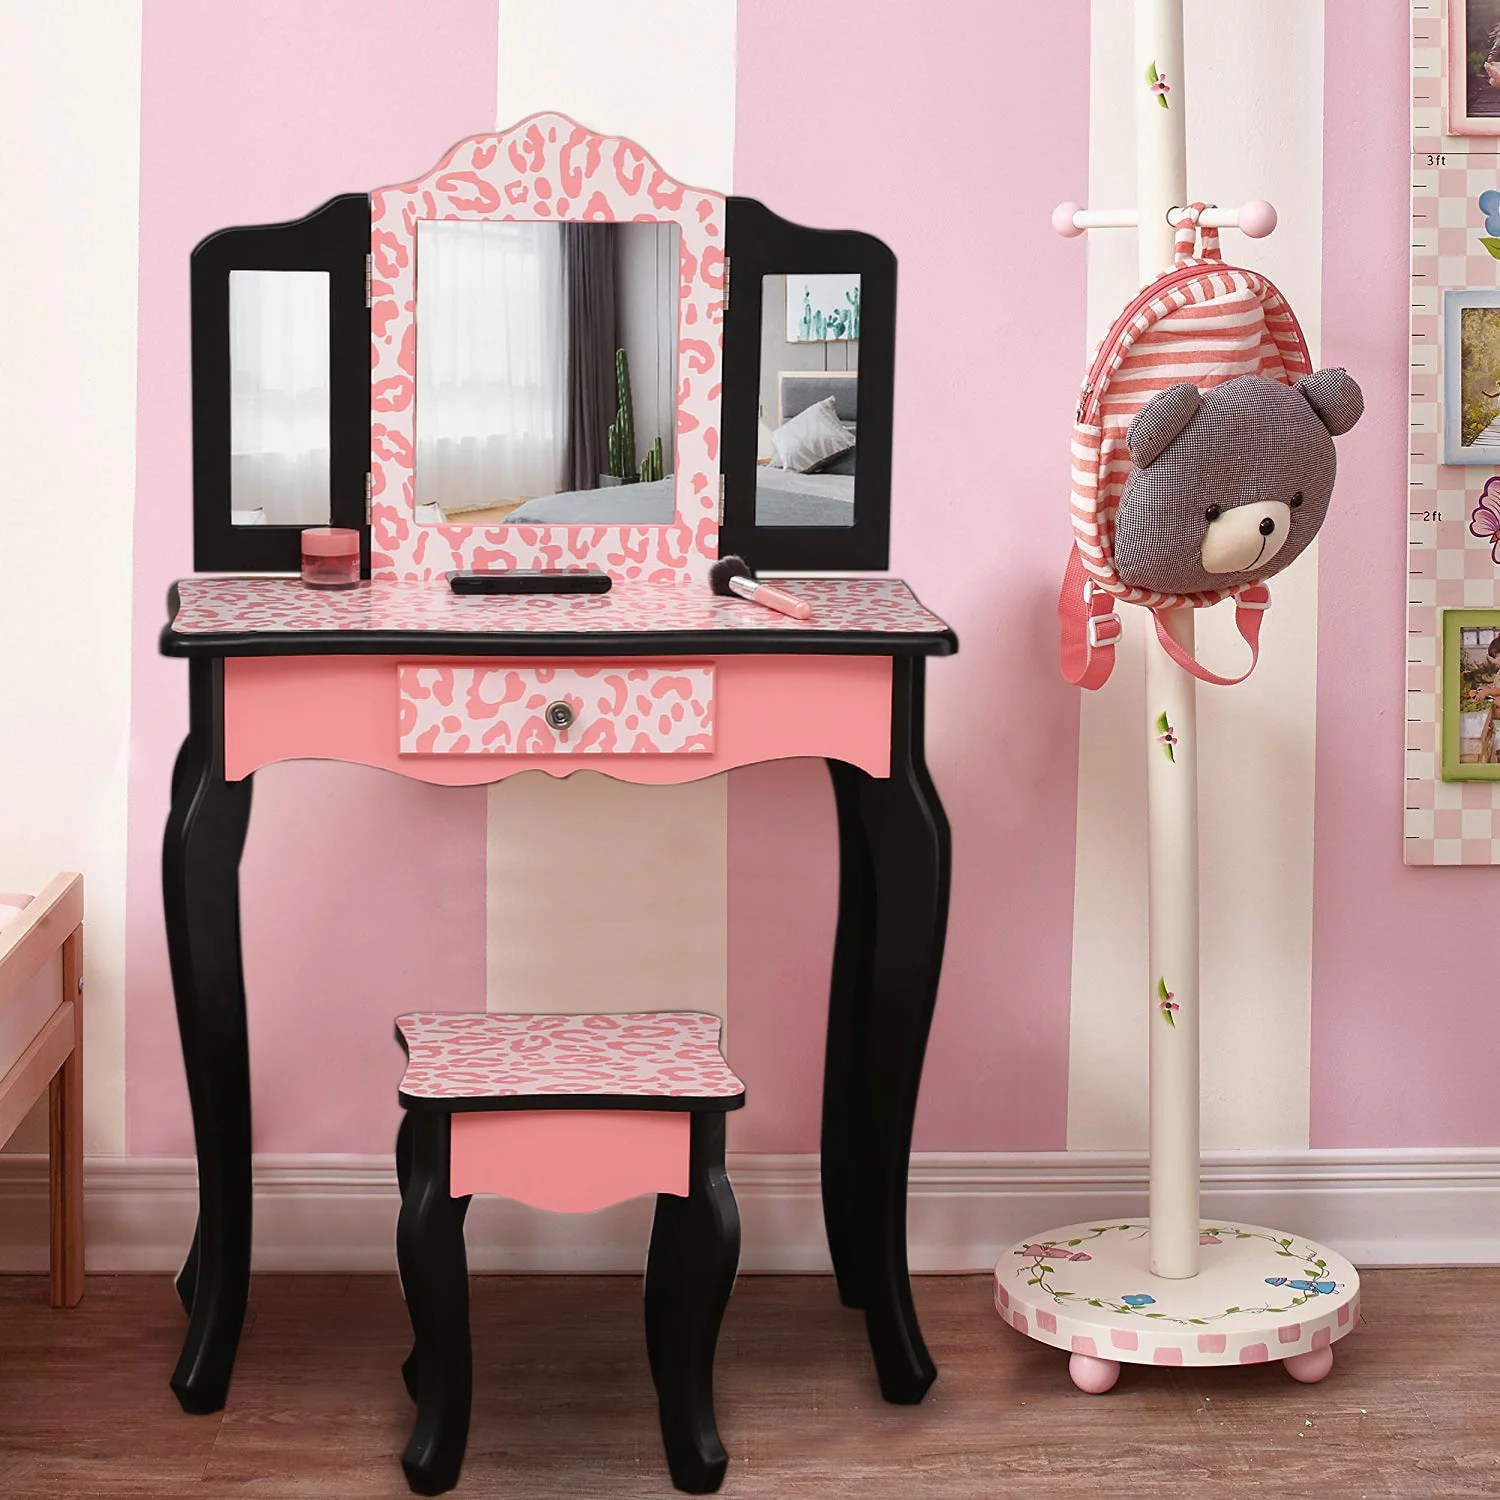 ktaxon kids wooden vanity table and stool set with 3 mirrors princess makeup dressing table children s furniture